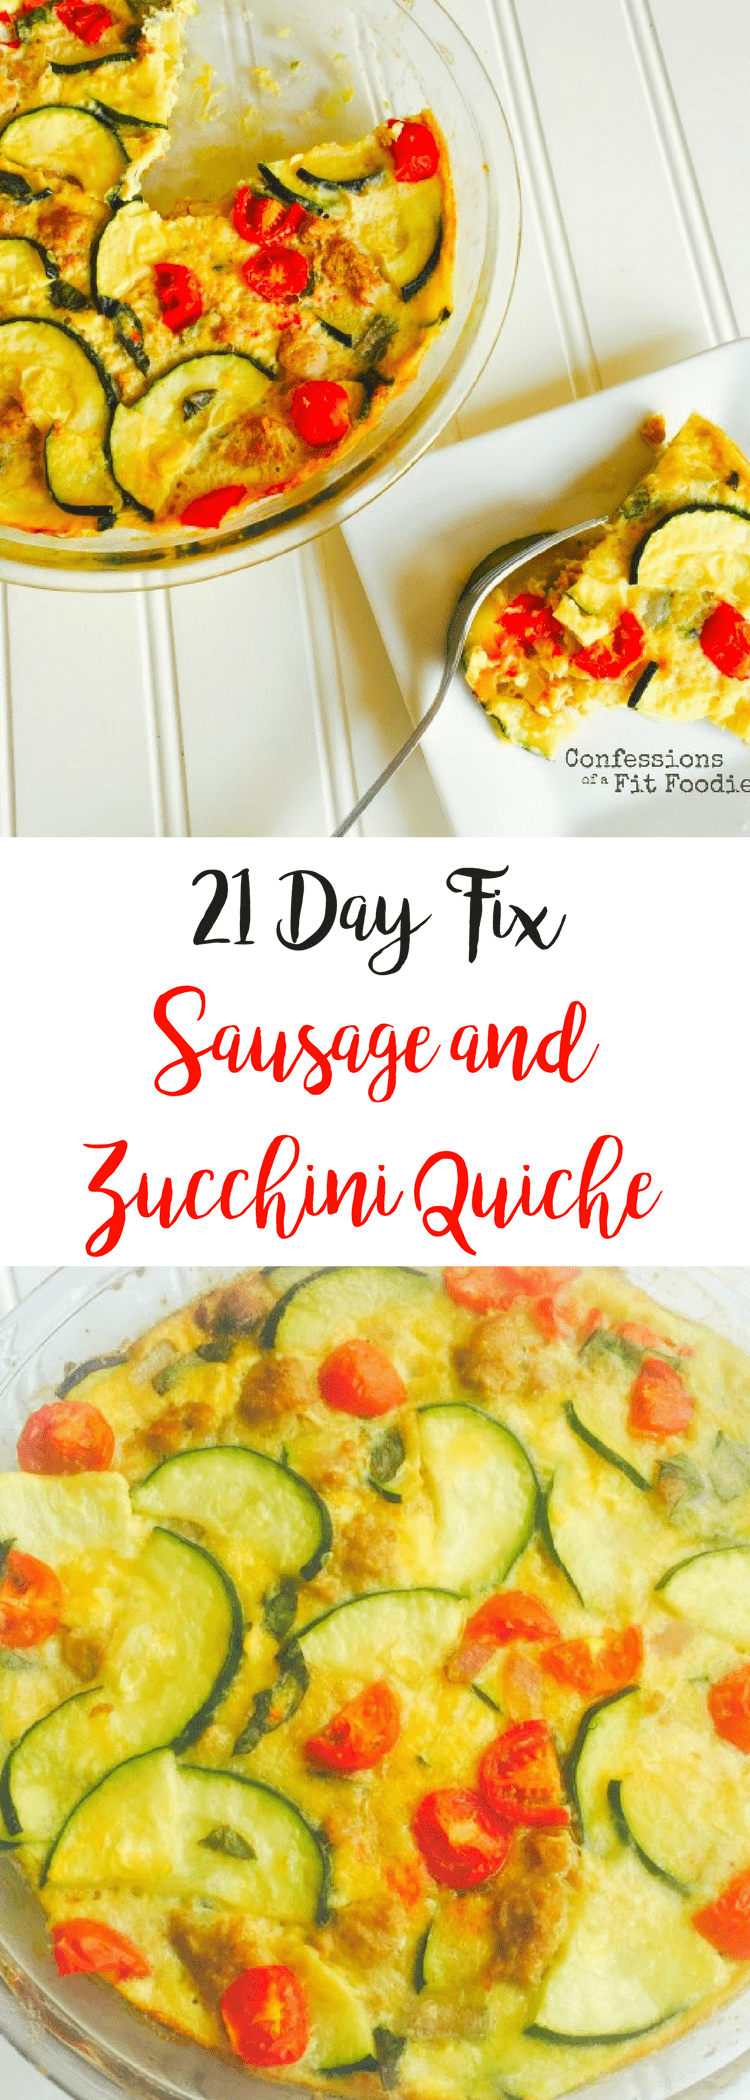 21 Day Fix Sausage and Zucchini Quiche {Dairy-free and Gluten-free} | Confessions of a Fit Foodie